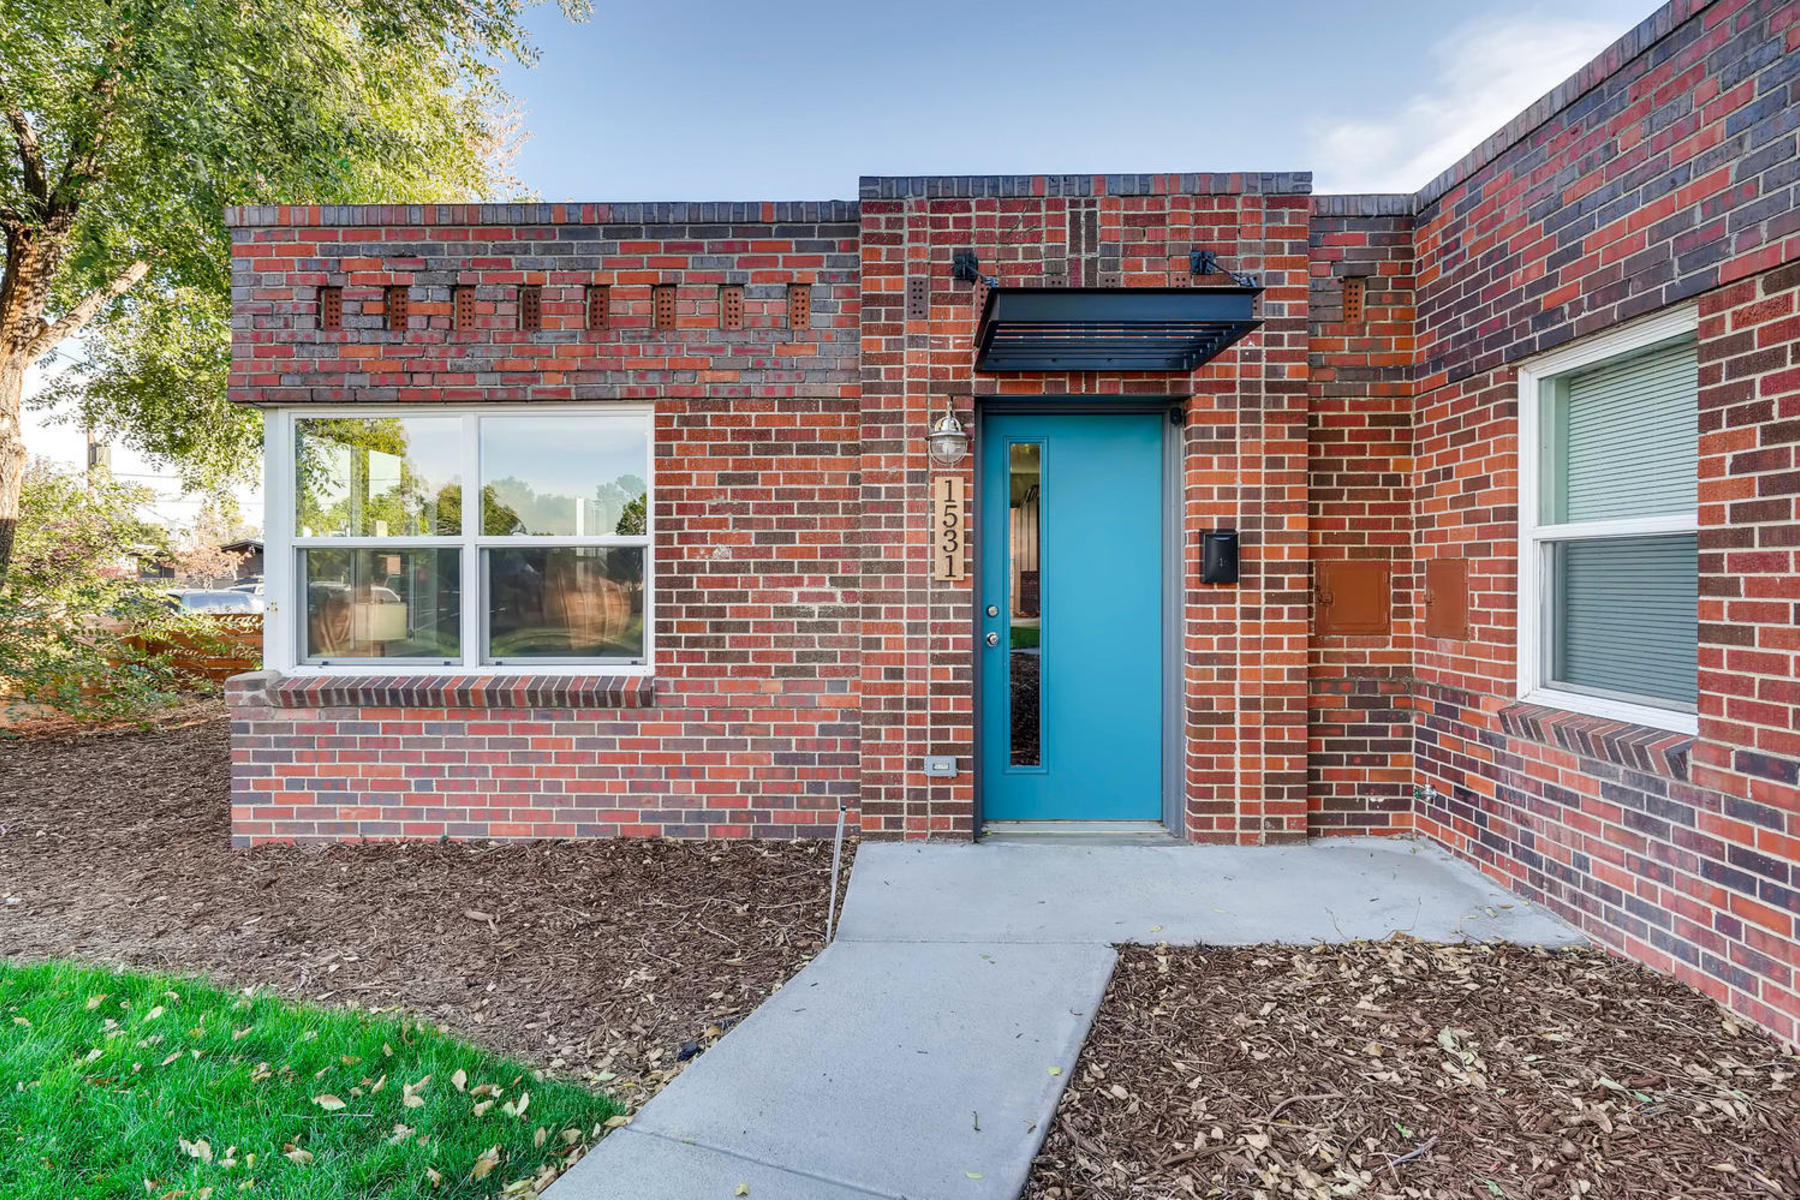 Townhouse for Active at Stunning Home In Small Enclave 1531 Wabash St Denver, Colorado 80220 United States